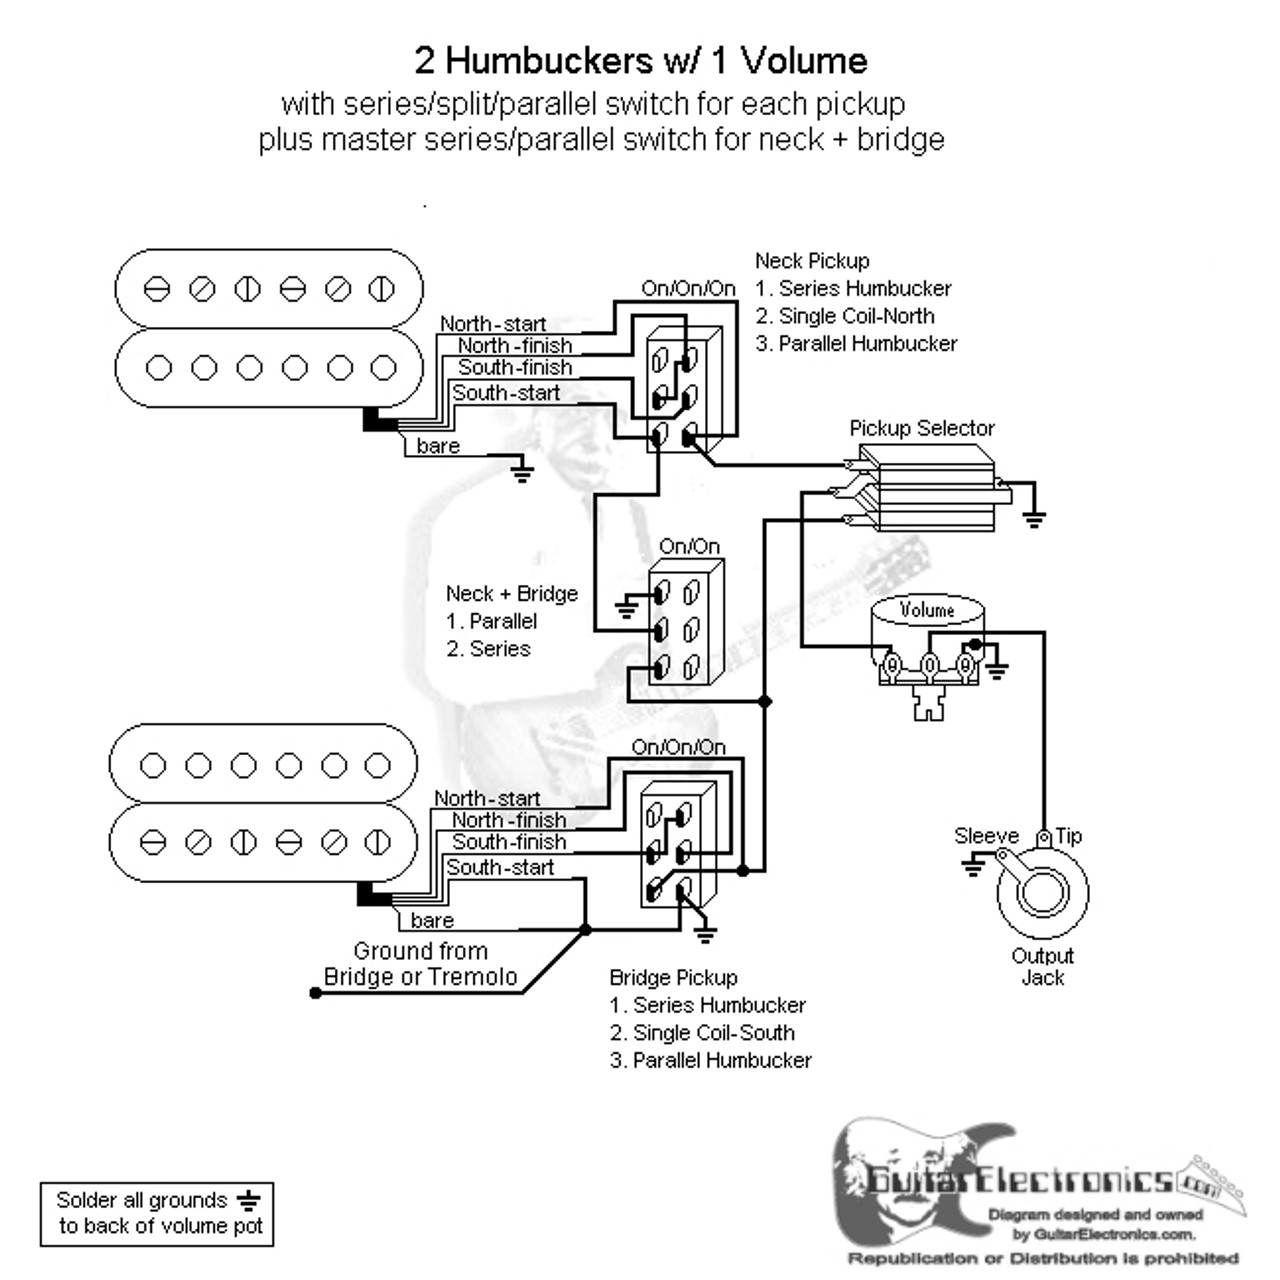 Pleasant Toggle Switch For Humbucker Split Into Single Coils Diagram Photo Wiring Cloud Hisonuggs Outletorg